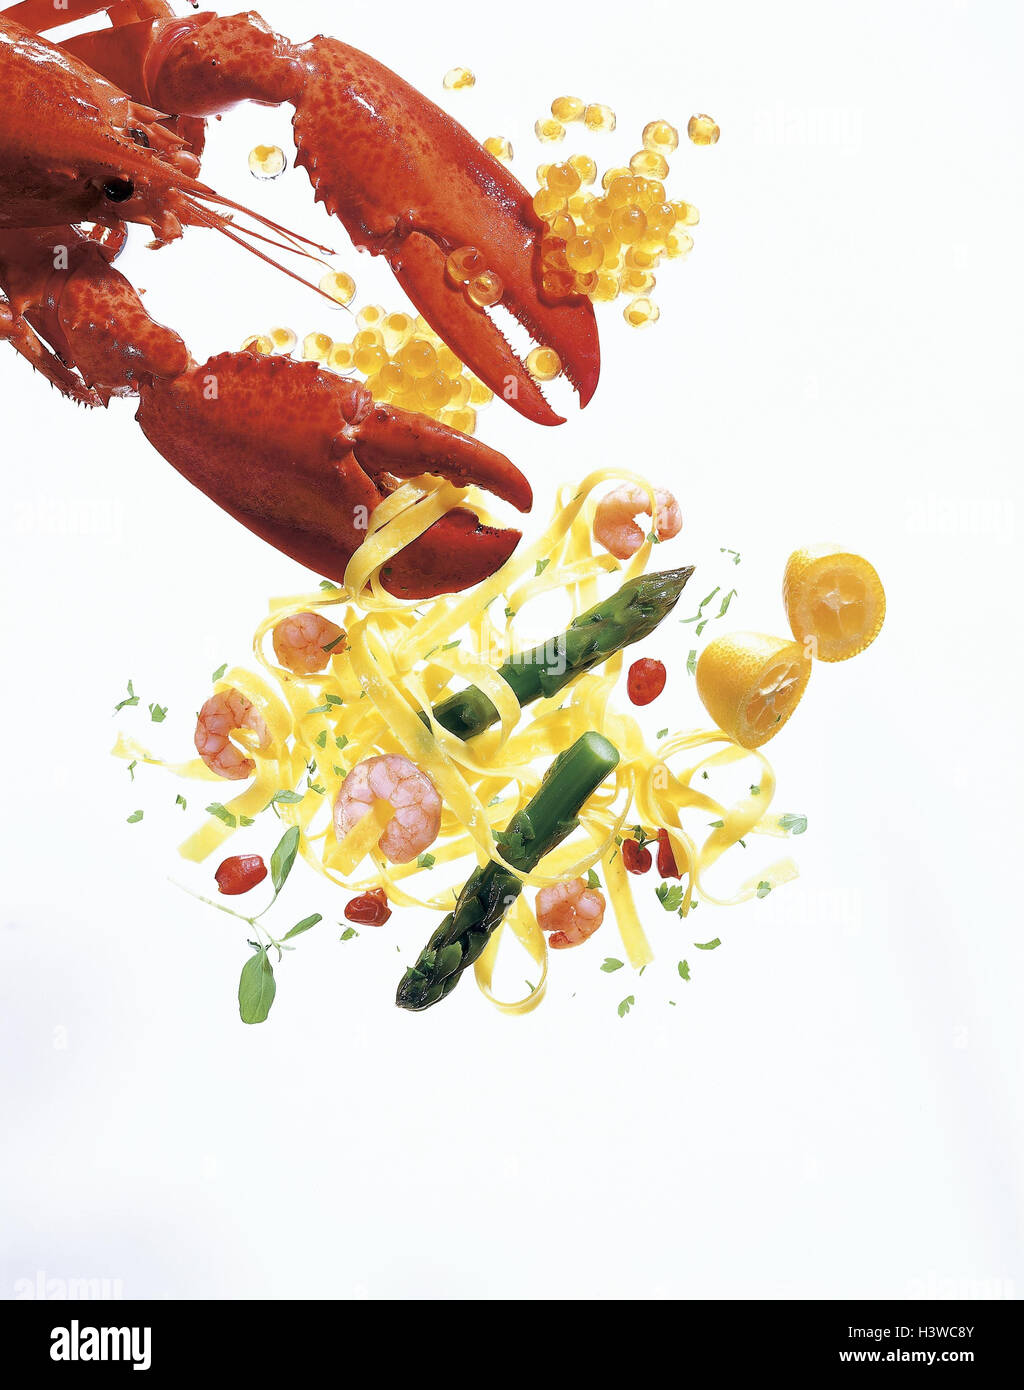 , Still life, lobsters, paste, crabs, caviar, fish dish, ingredients, larders, food, noodles, seafood, crabs, asparagus - Stock Image